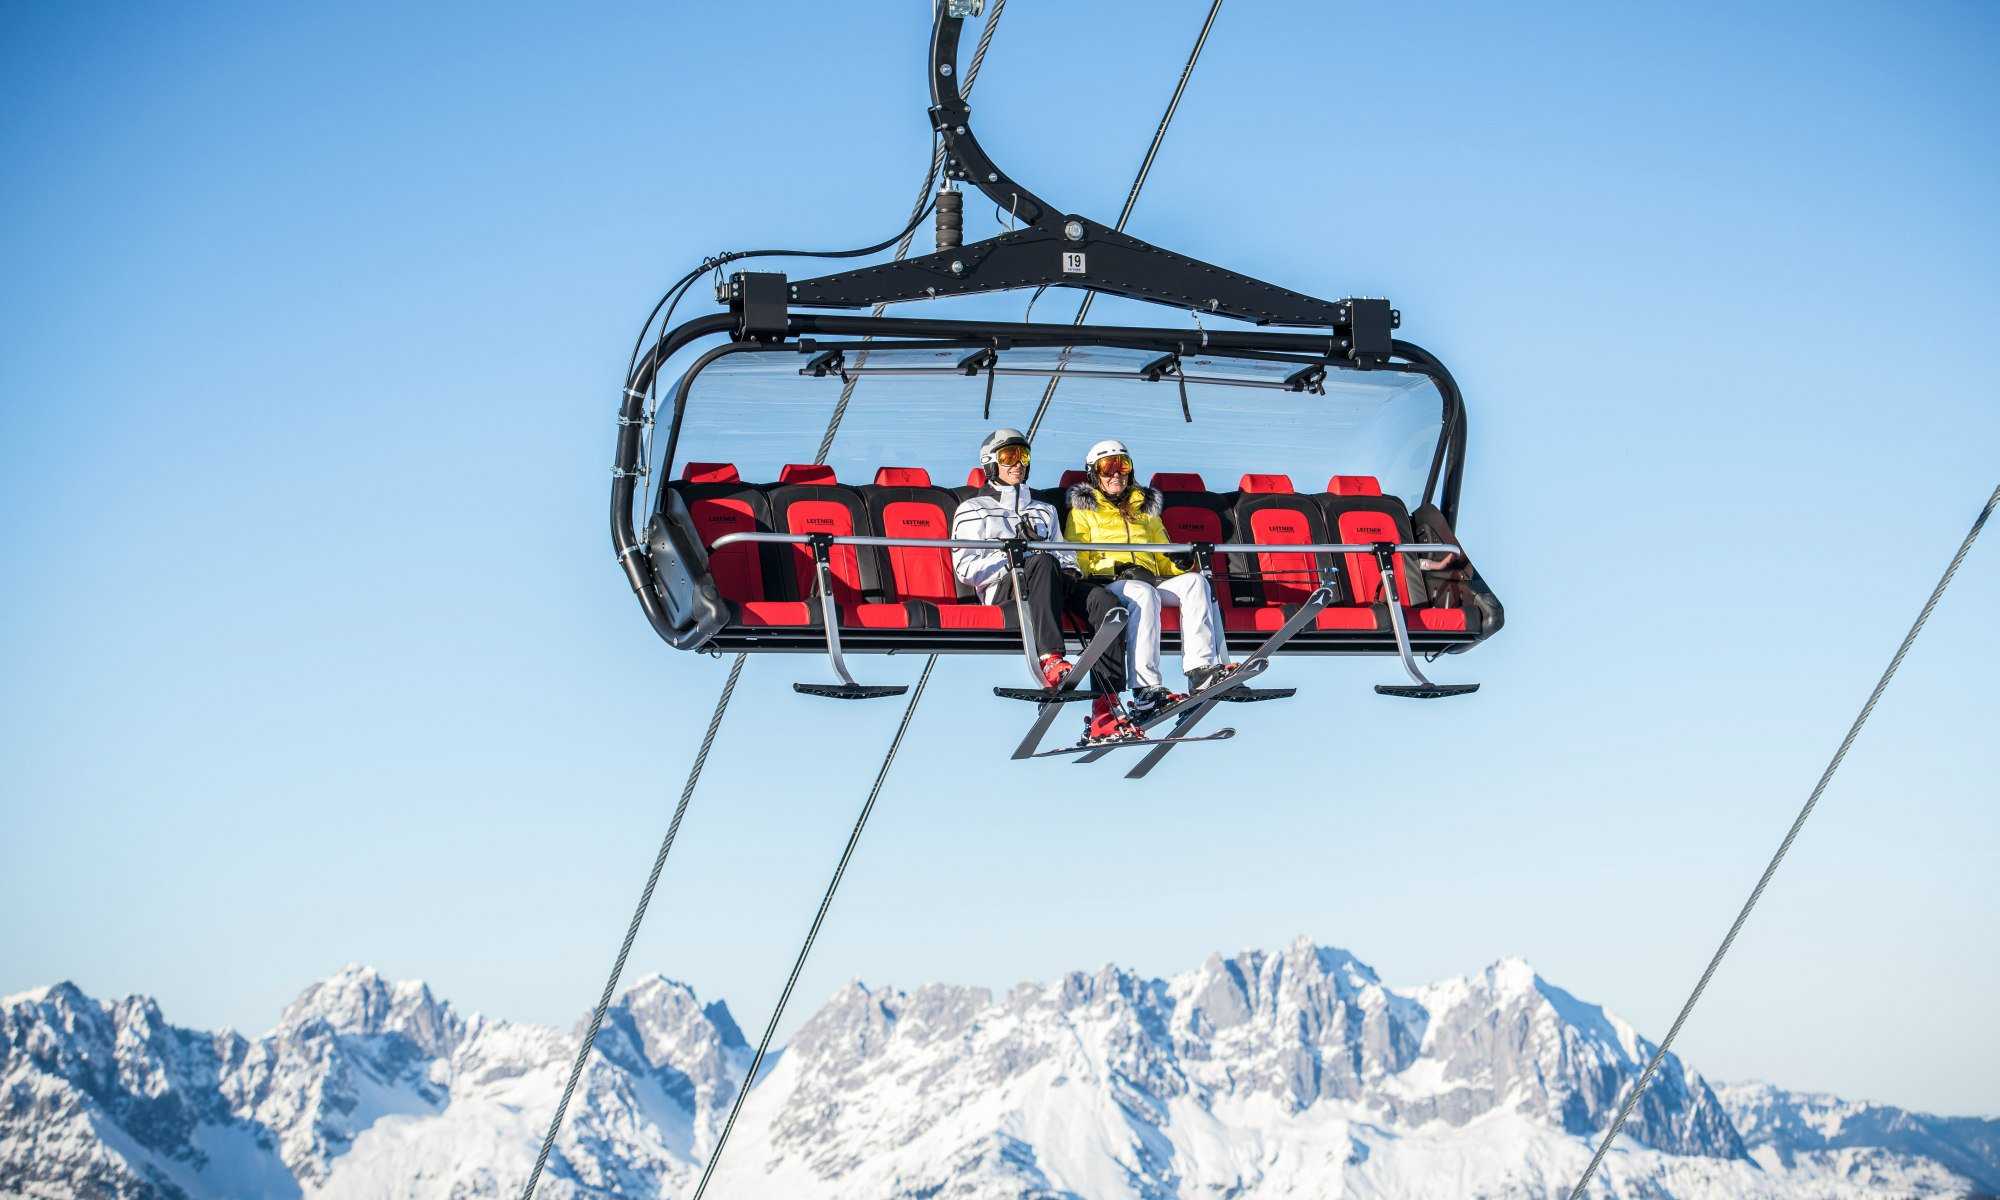 Taking the chairlift in Kitzbühel gives you the opportunity to enjoy a beautiful view of the Alps.